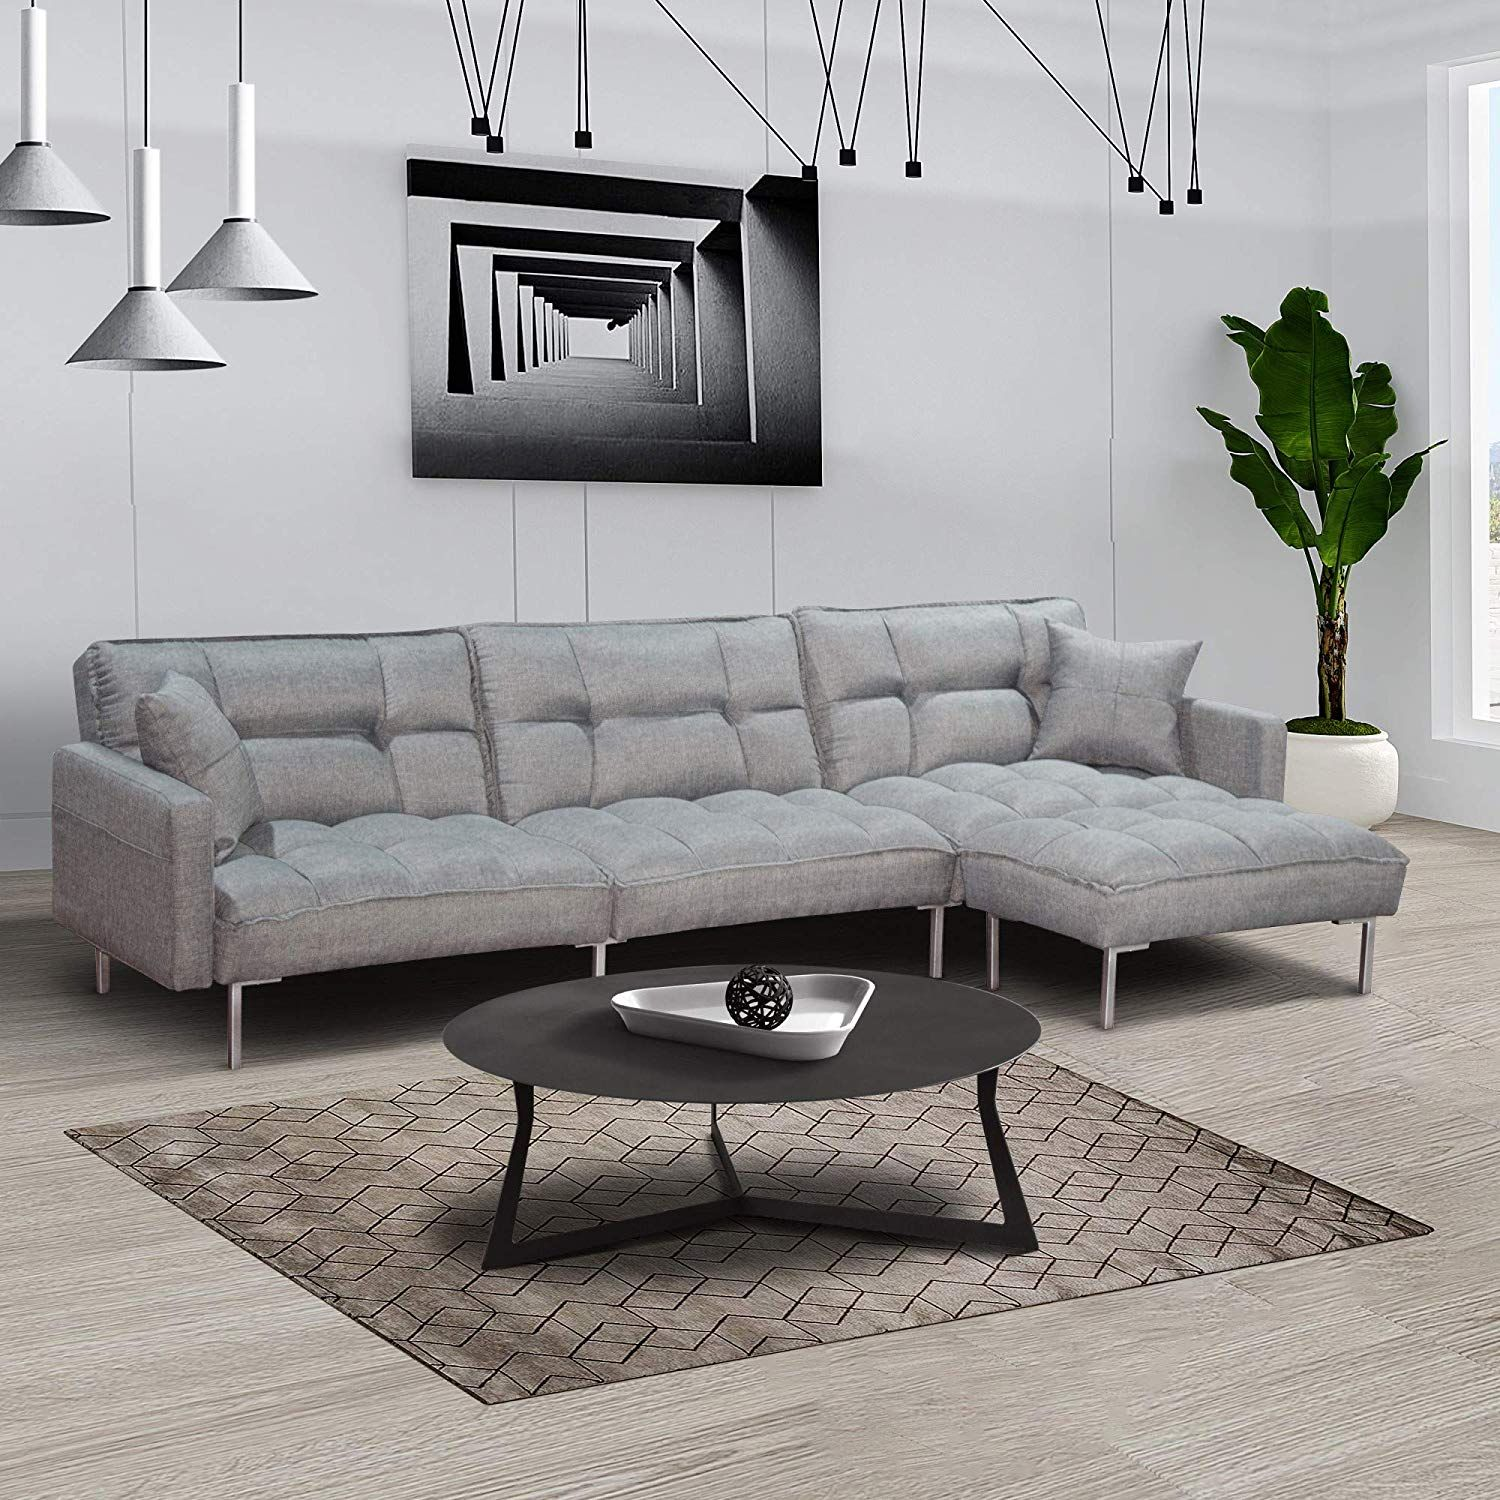 Dercass Modern Design L Shaped Couch Sectional Sofa Sleeper Fabric Convertible Sectional Sofa In 2020 Corner Sofa Living Room Sectional Sofa Grey Furniture Living Room